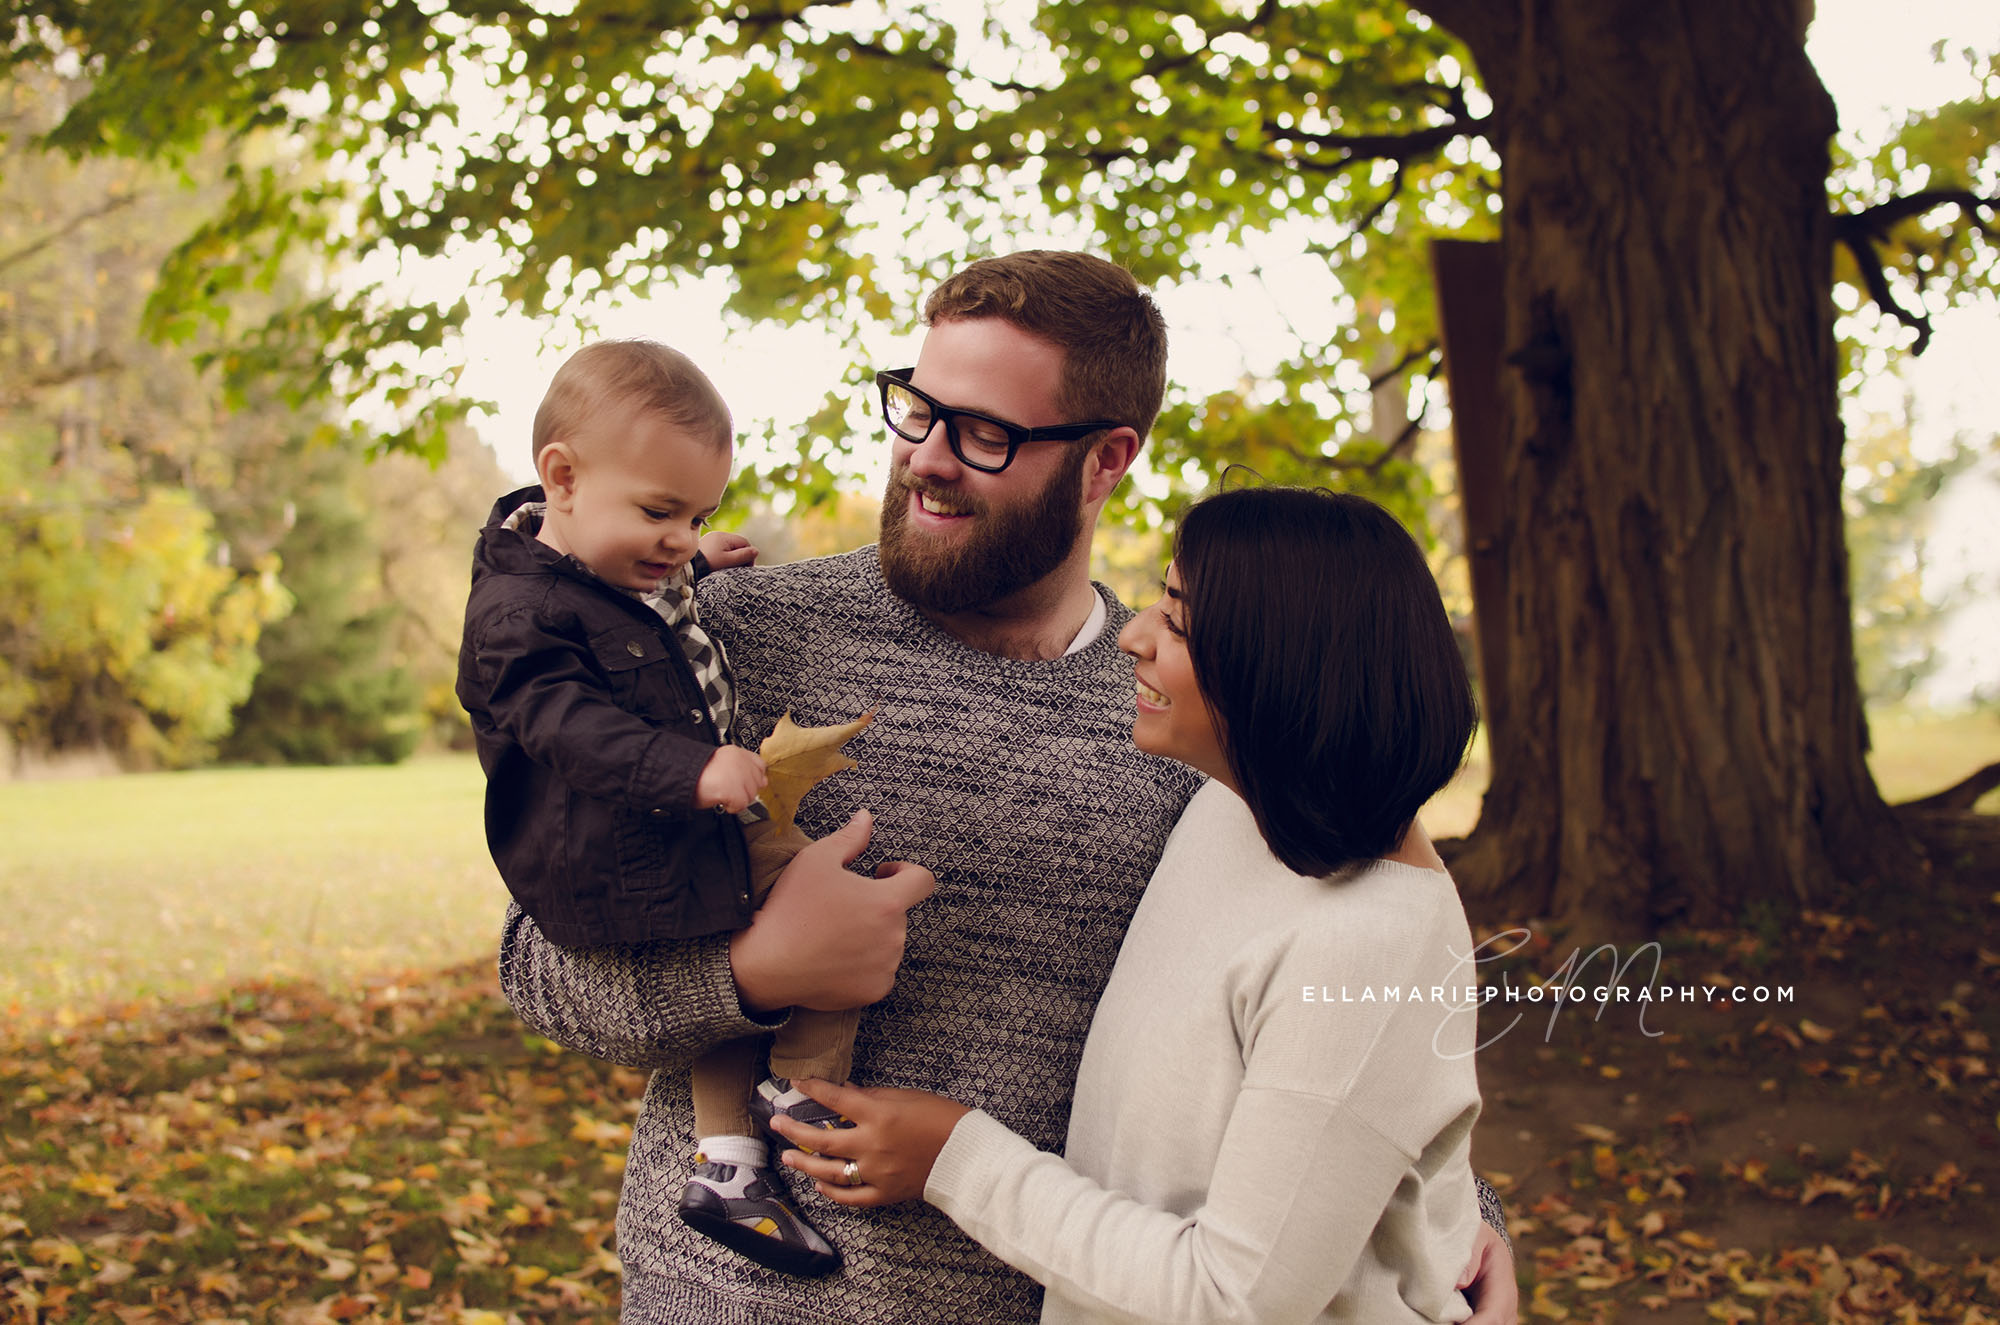 Erika_EllaMariePhotography_family_Baden_ON_New_Hamburg_Stratford_Waterloo_Kitchener_Guelph_Cambridge_Listowel_photographer_photography_04.jpg